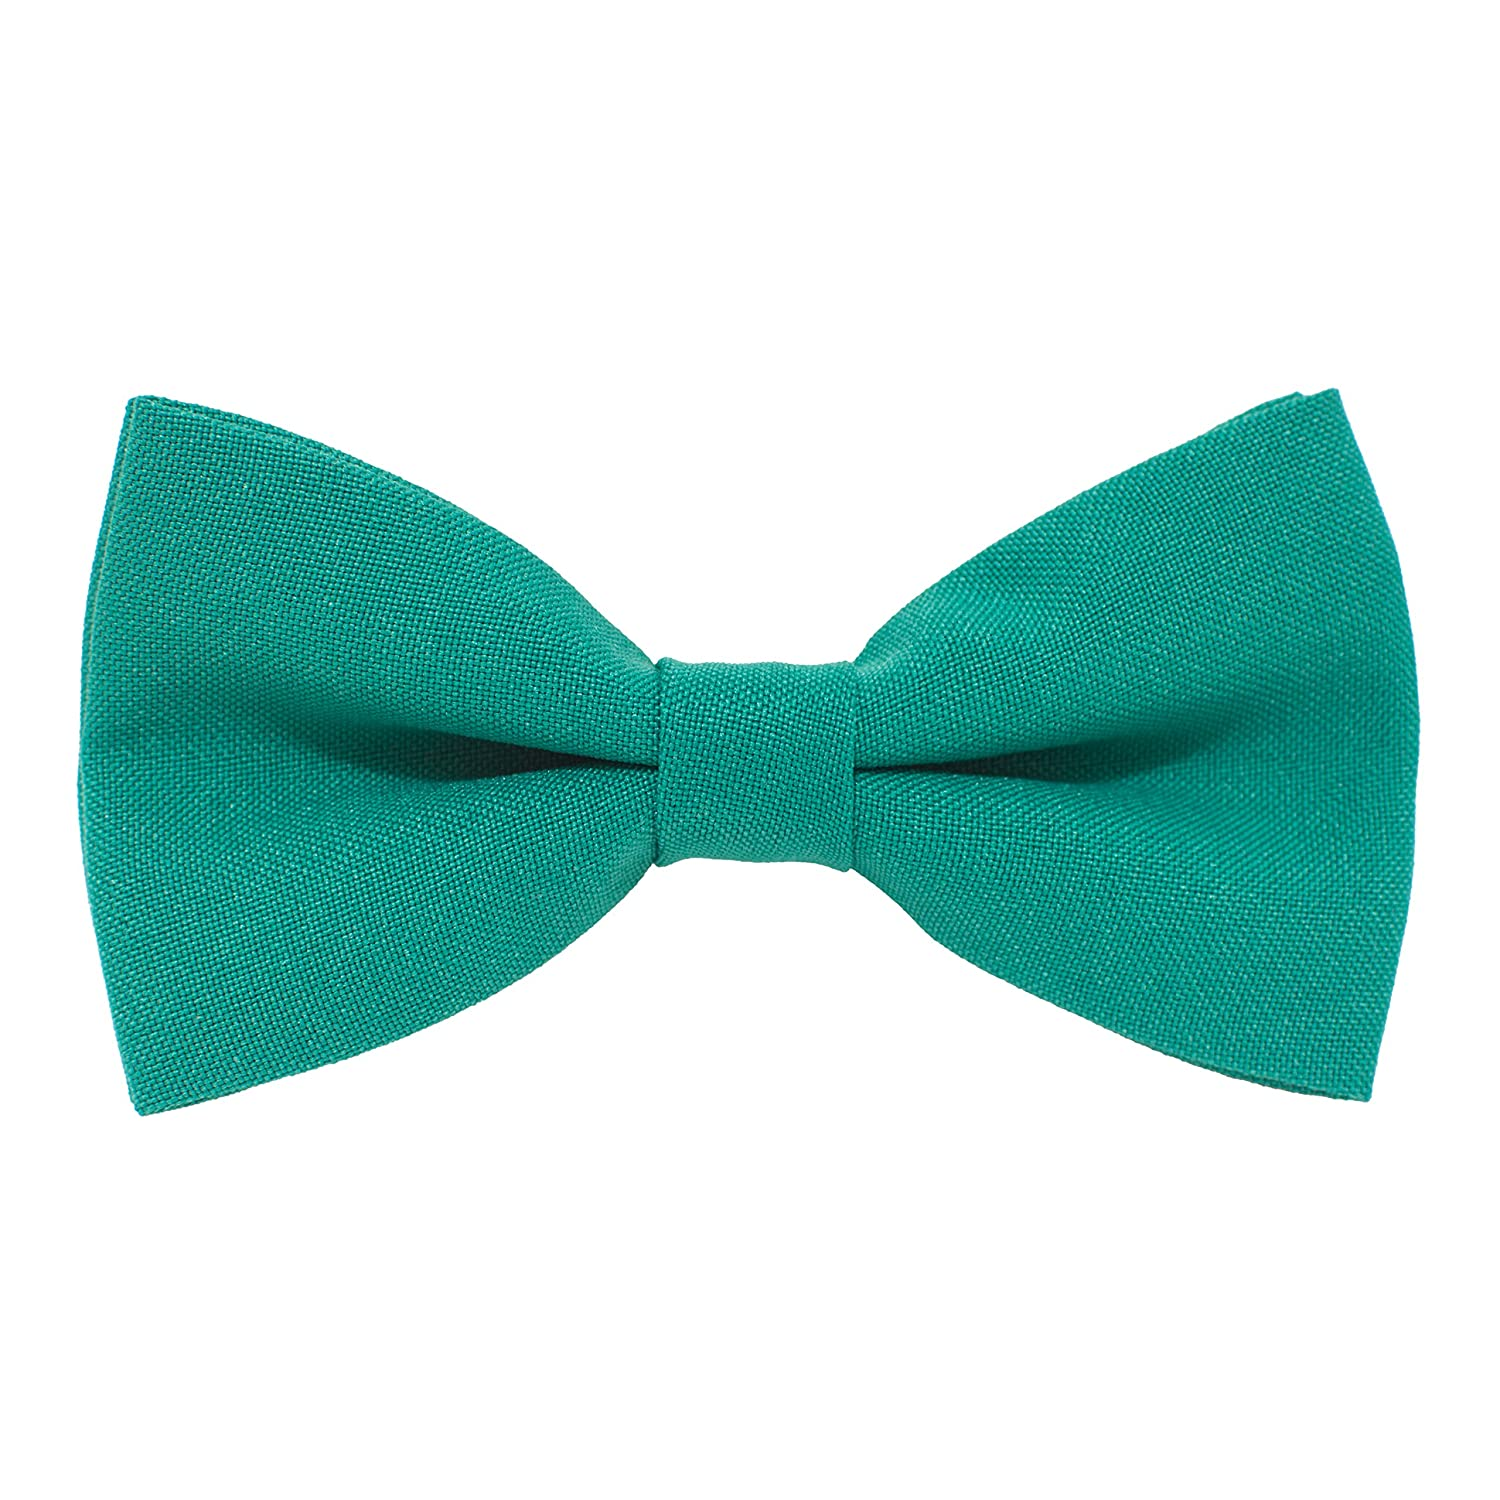 Classic Pre-Tied Bow Tie Formal Solid Tuxedo, by Bow Tie House (Small, Deep blue) 07261